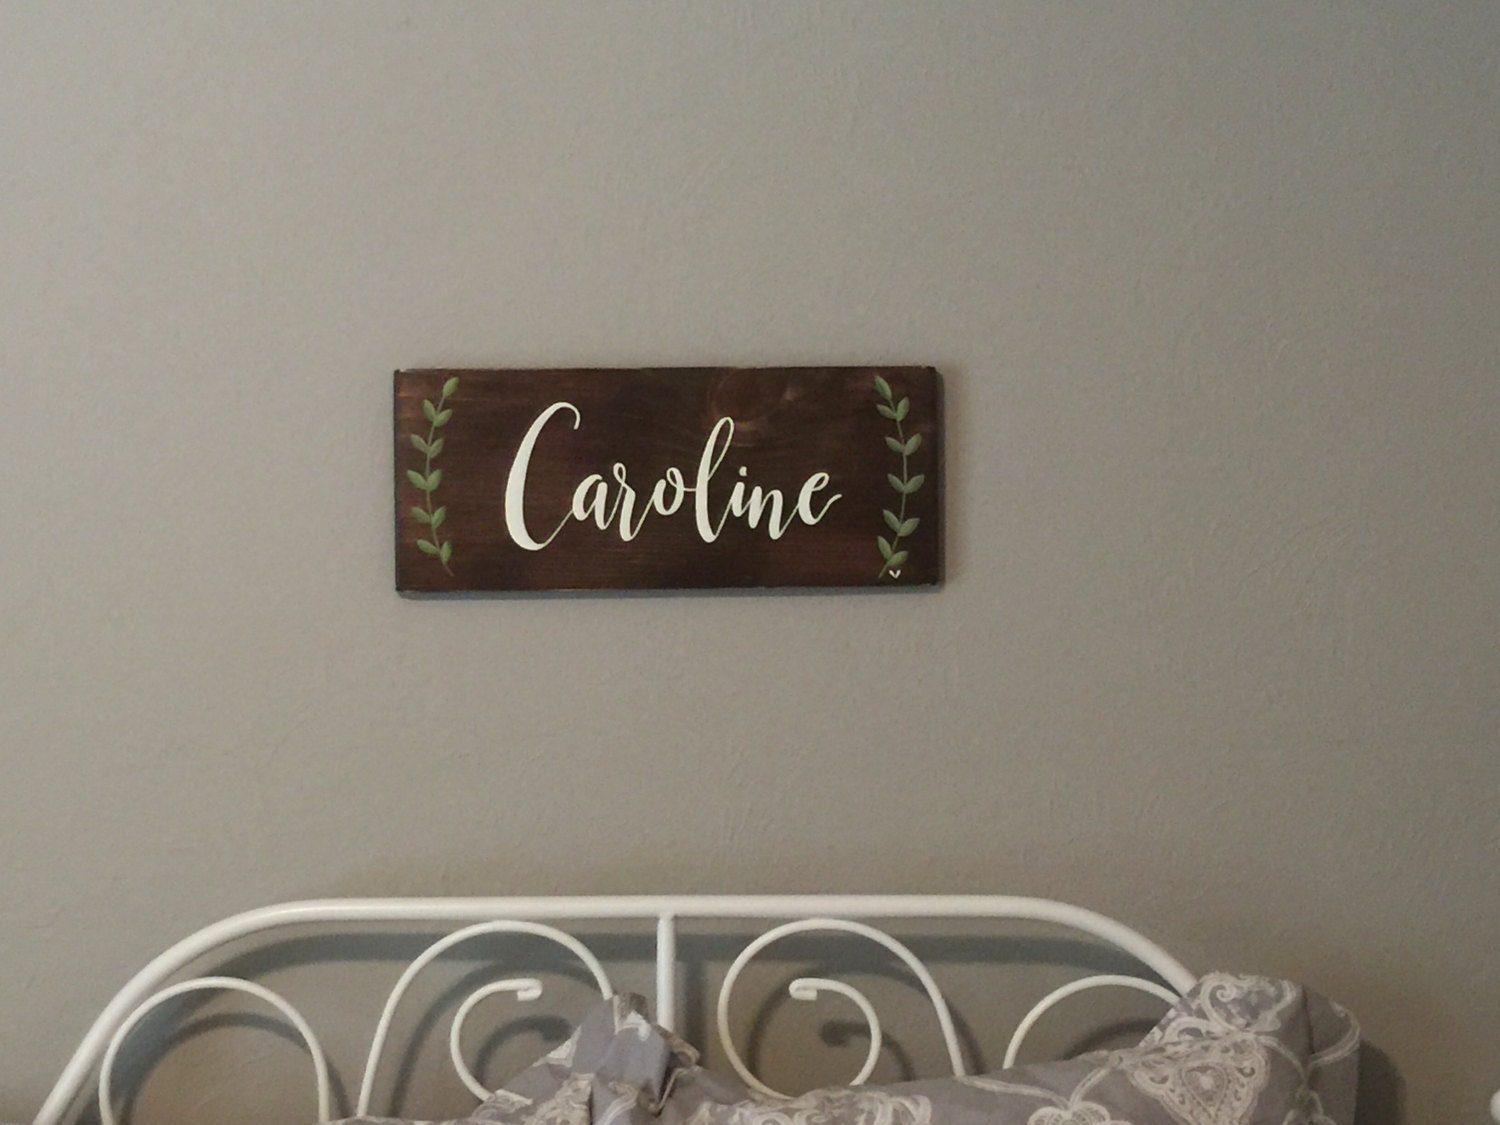 Personalized Bedroom Decor Personalized Bedroom Decor Personalized Bedroom Decor Name Sign